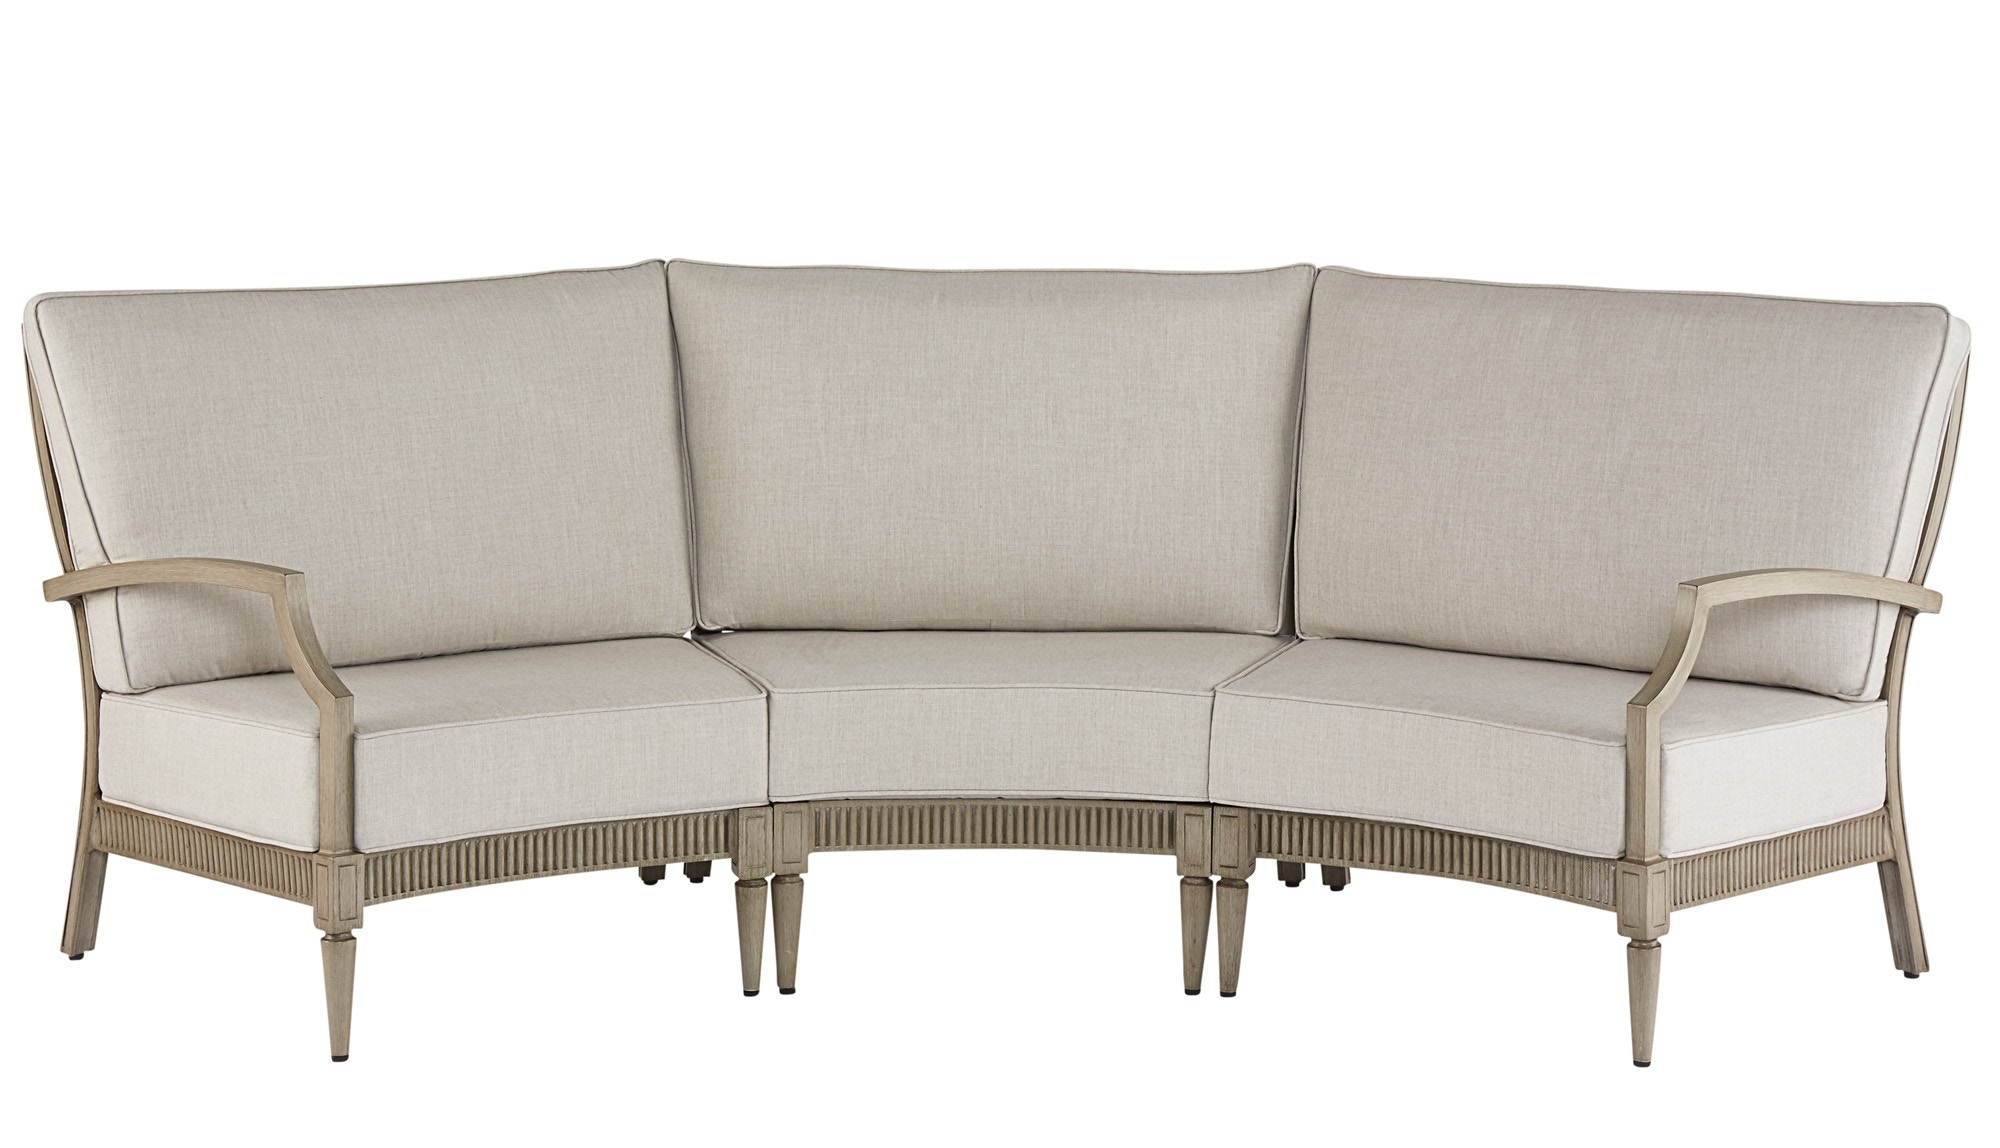 ART Furniture 9185284242 OutdoorPatio Sullivan Sectional Includes